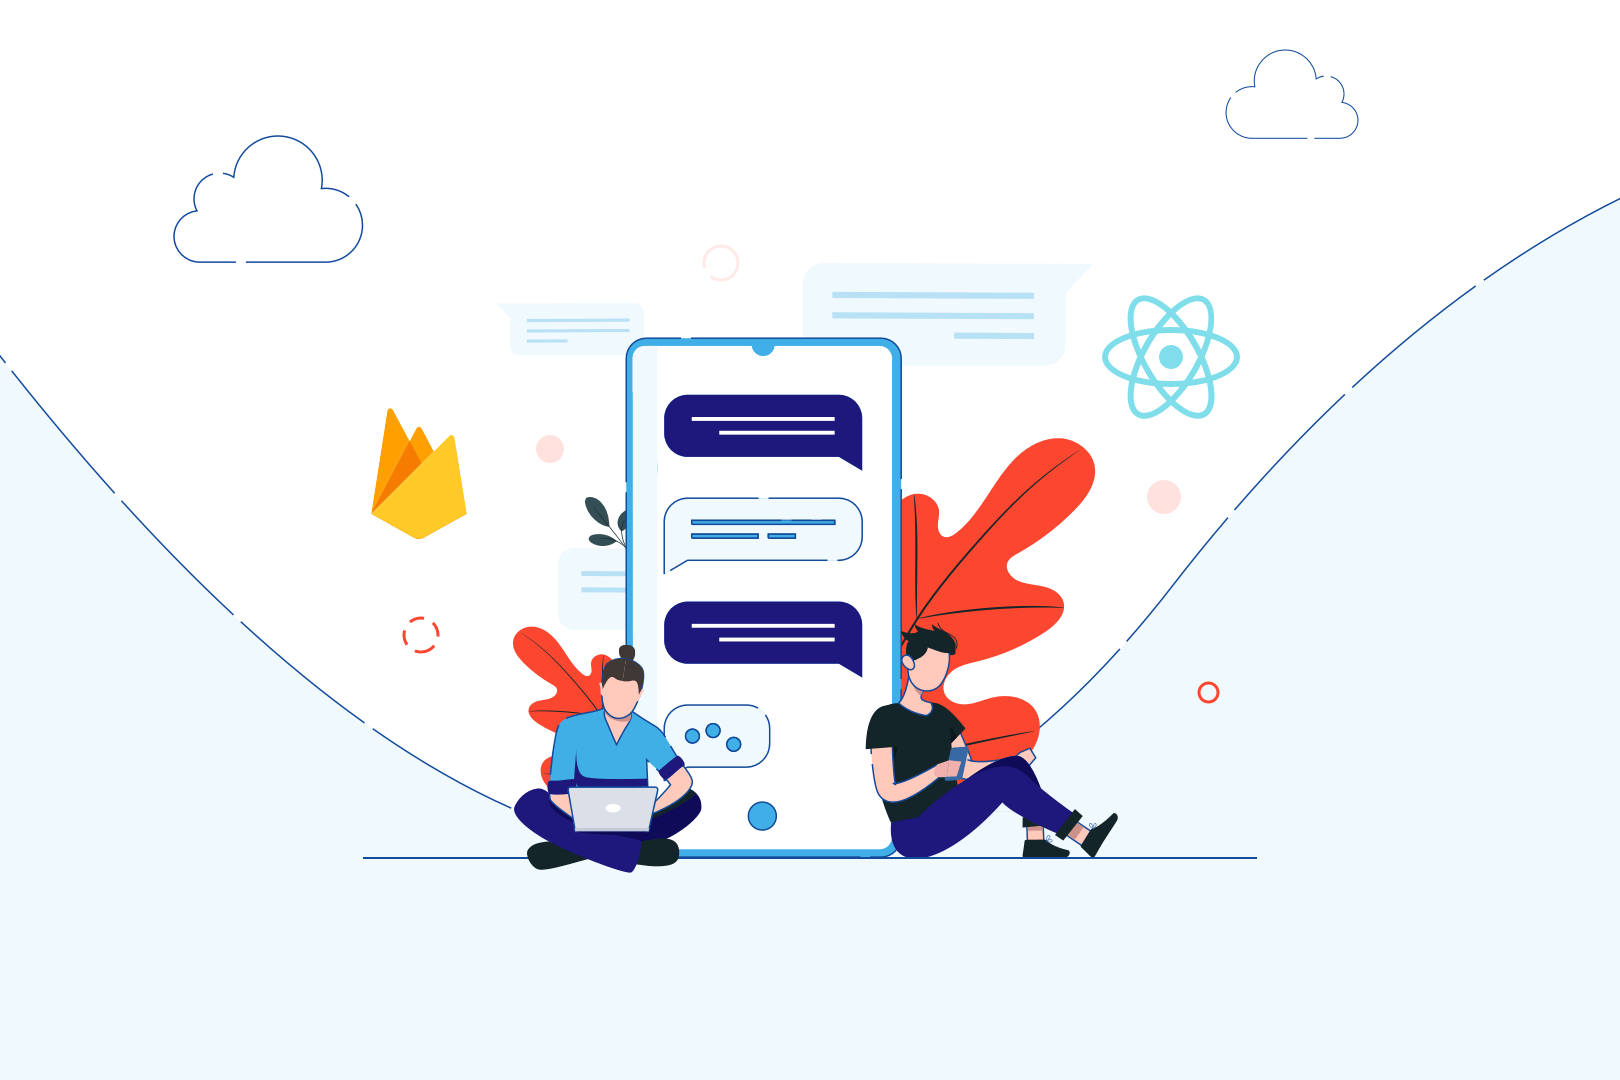 Adding cross-platform React/React Native chat to existing application – case study